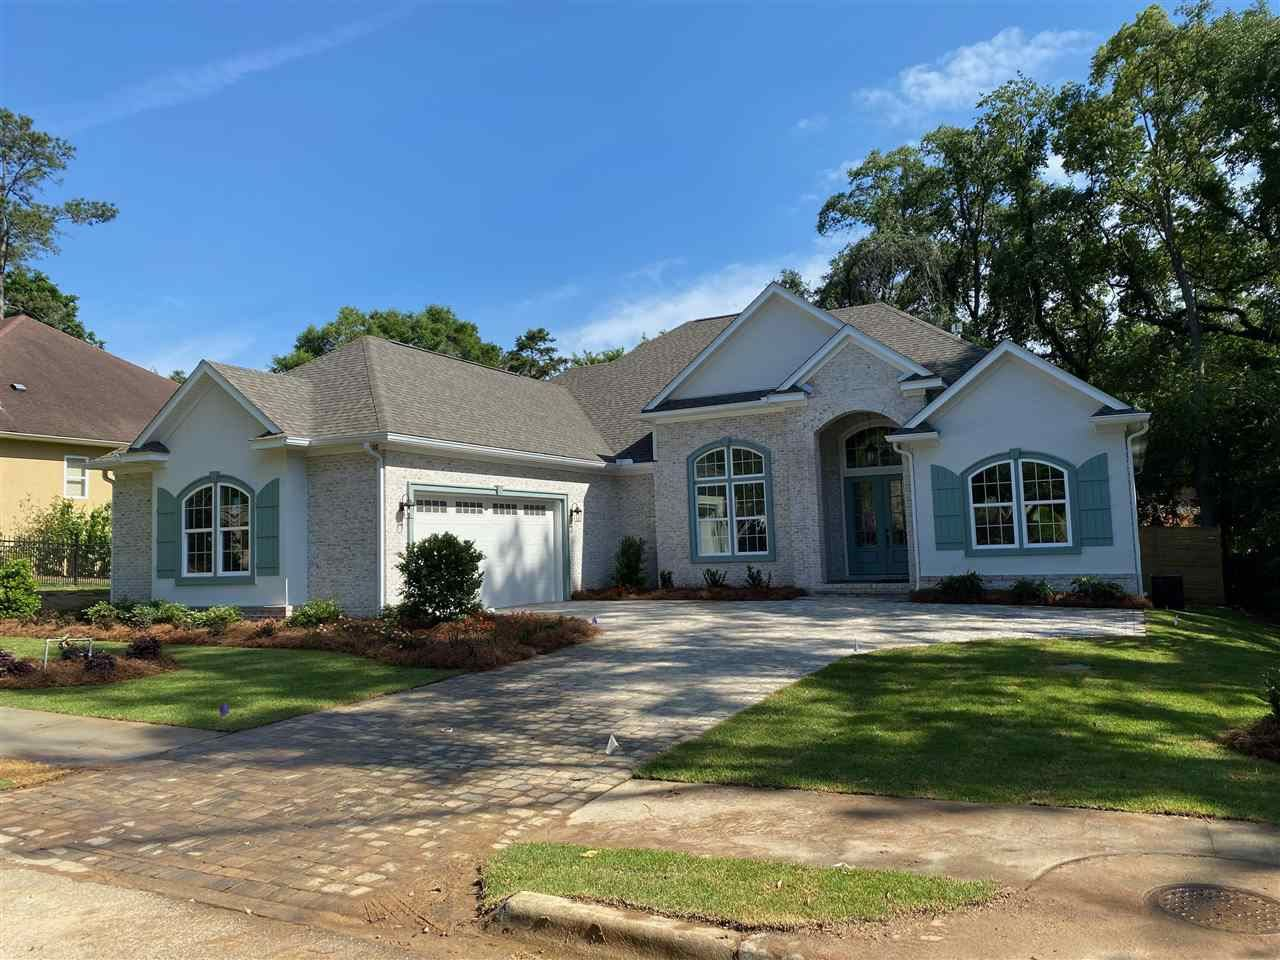 Photo of 1310 Preakness Point, TALLAHASSEE, FL 32308 (MLS # 331848)